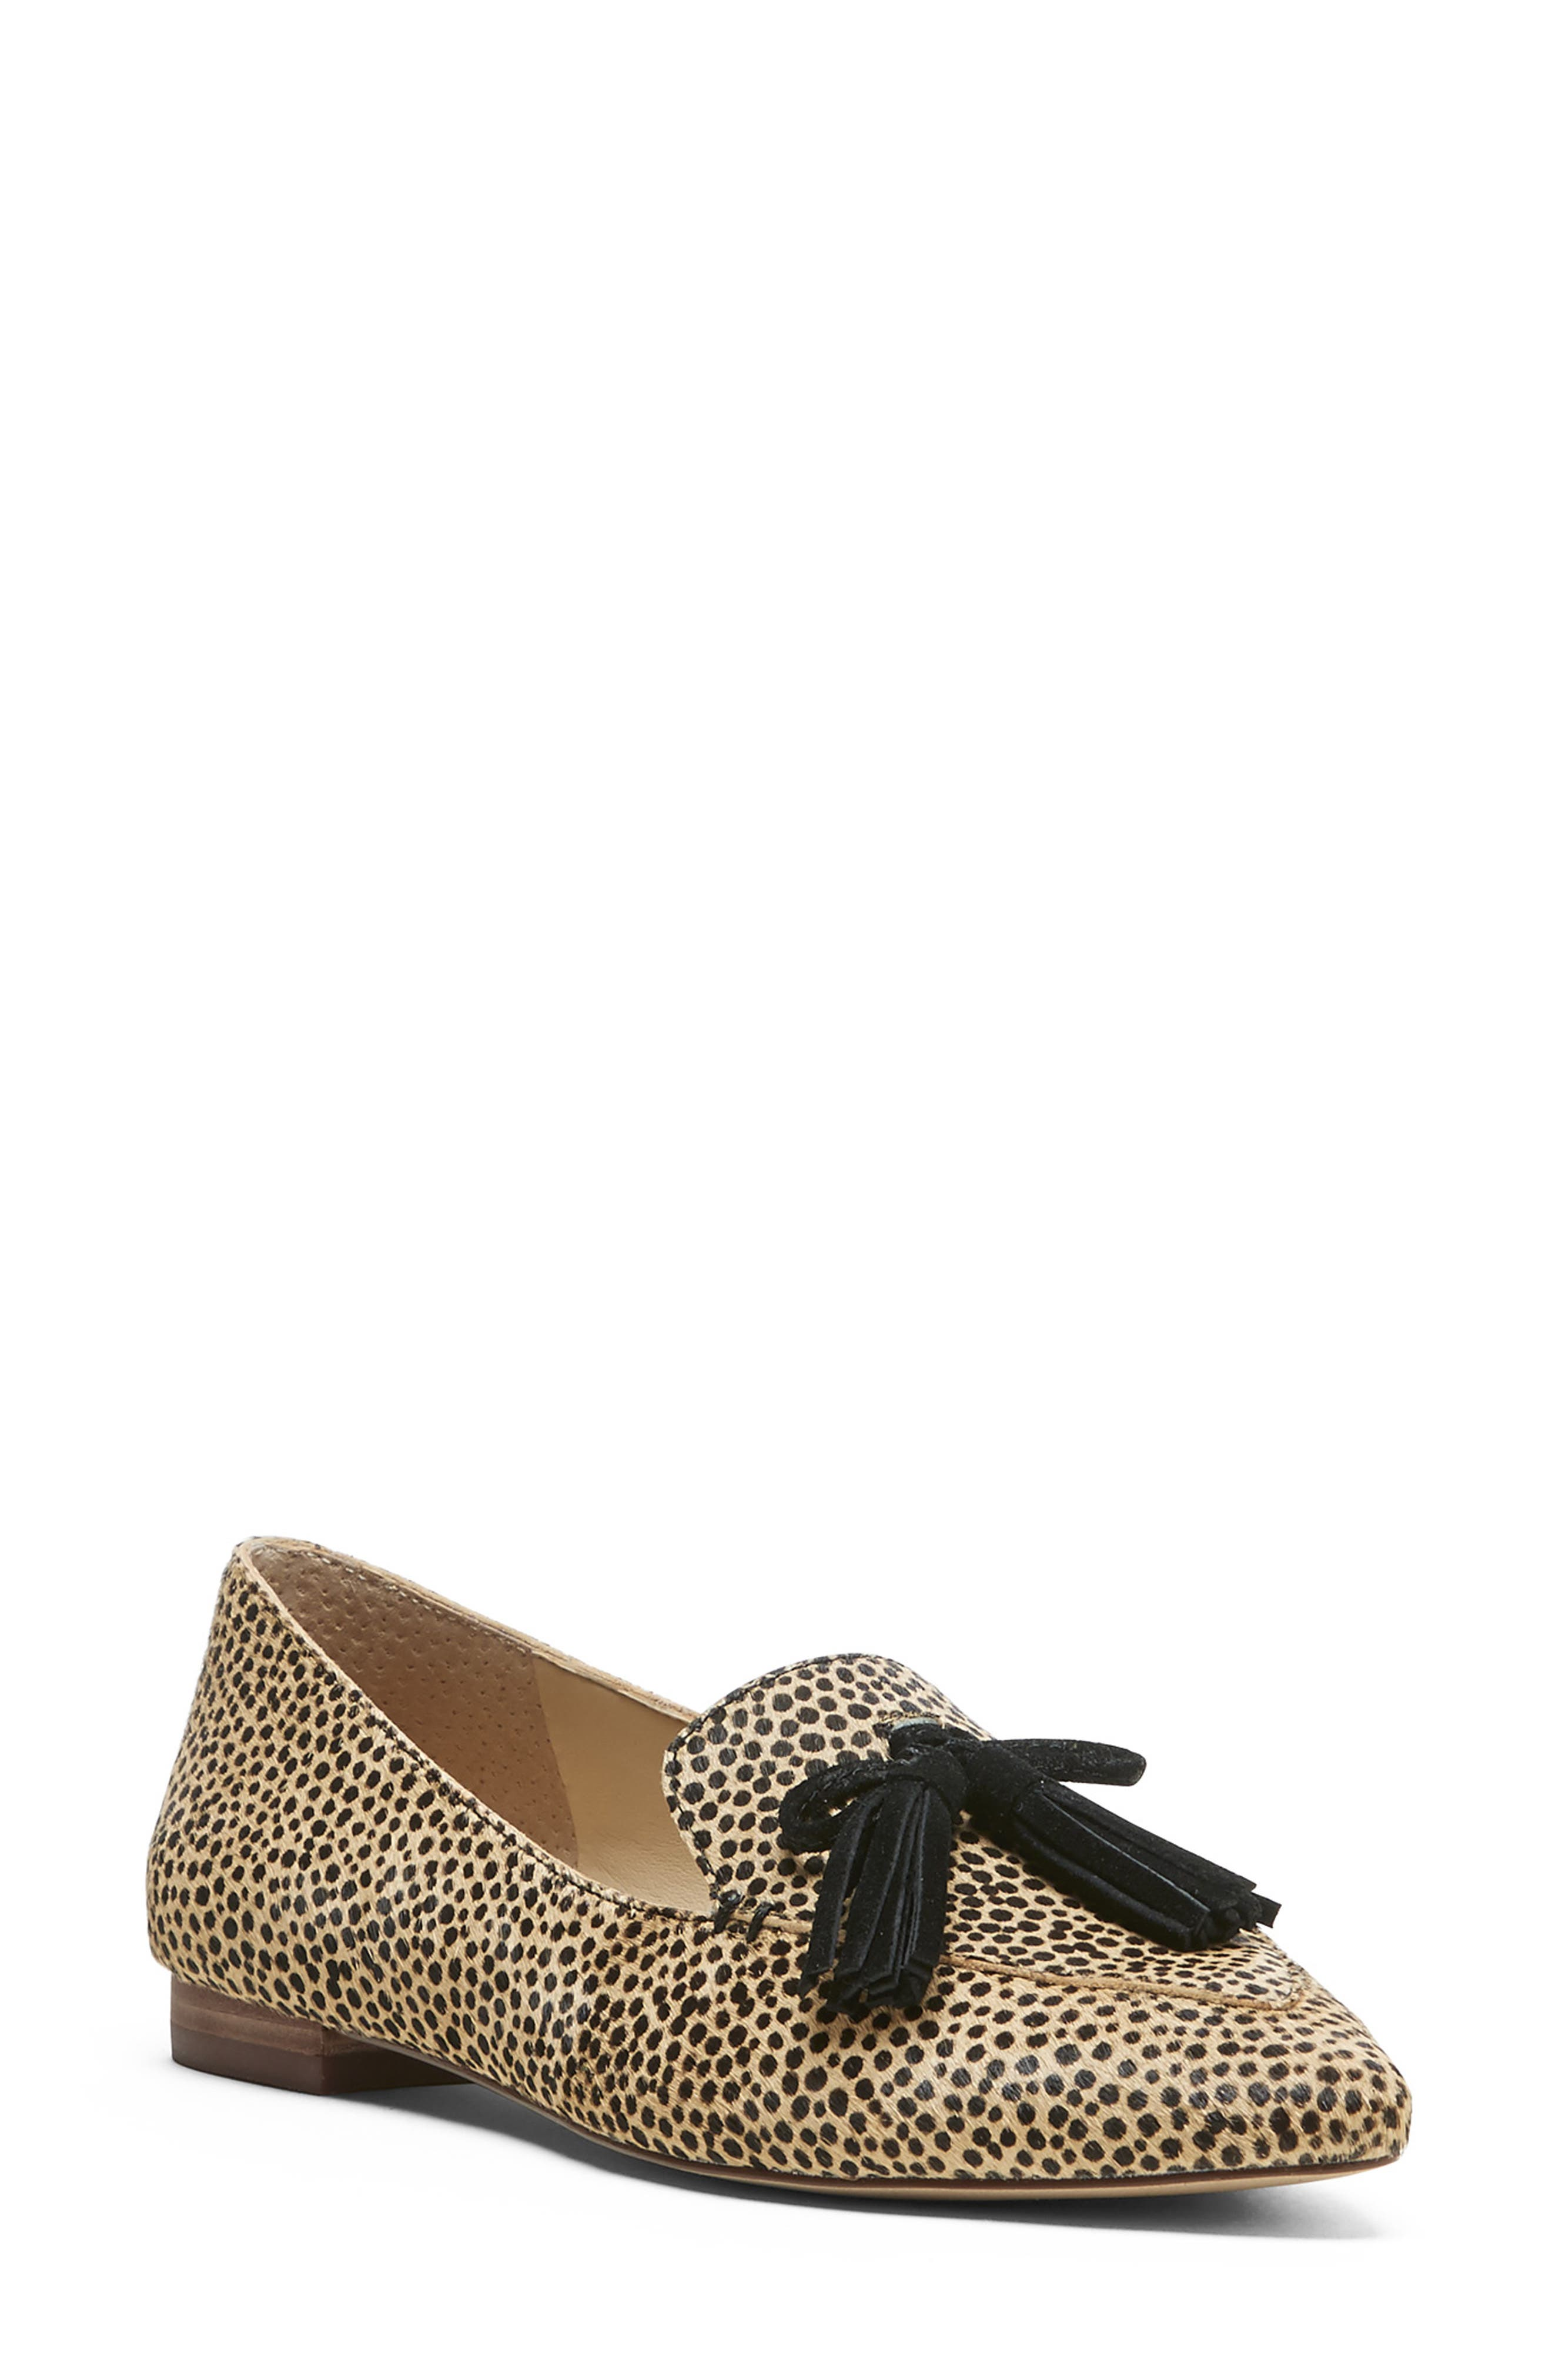 SOLE SOCIETY, Hadlee Loafer, Main thumbnail 1, color, DOTTED CALF HAIR